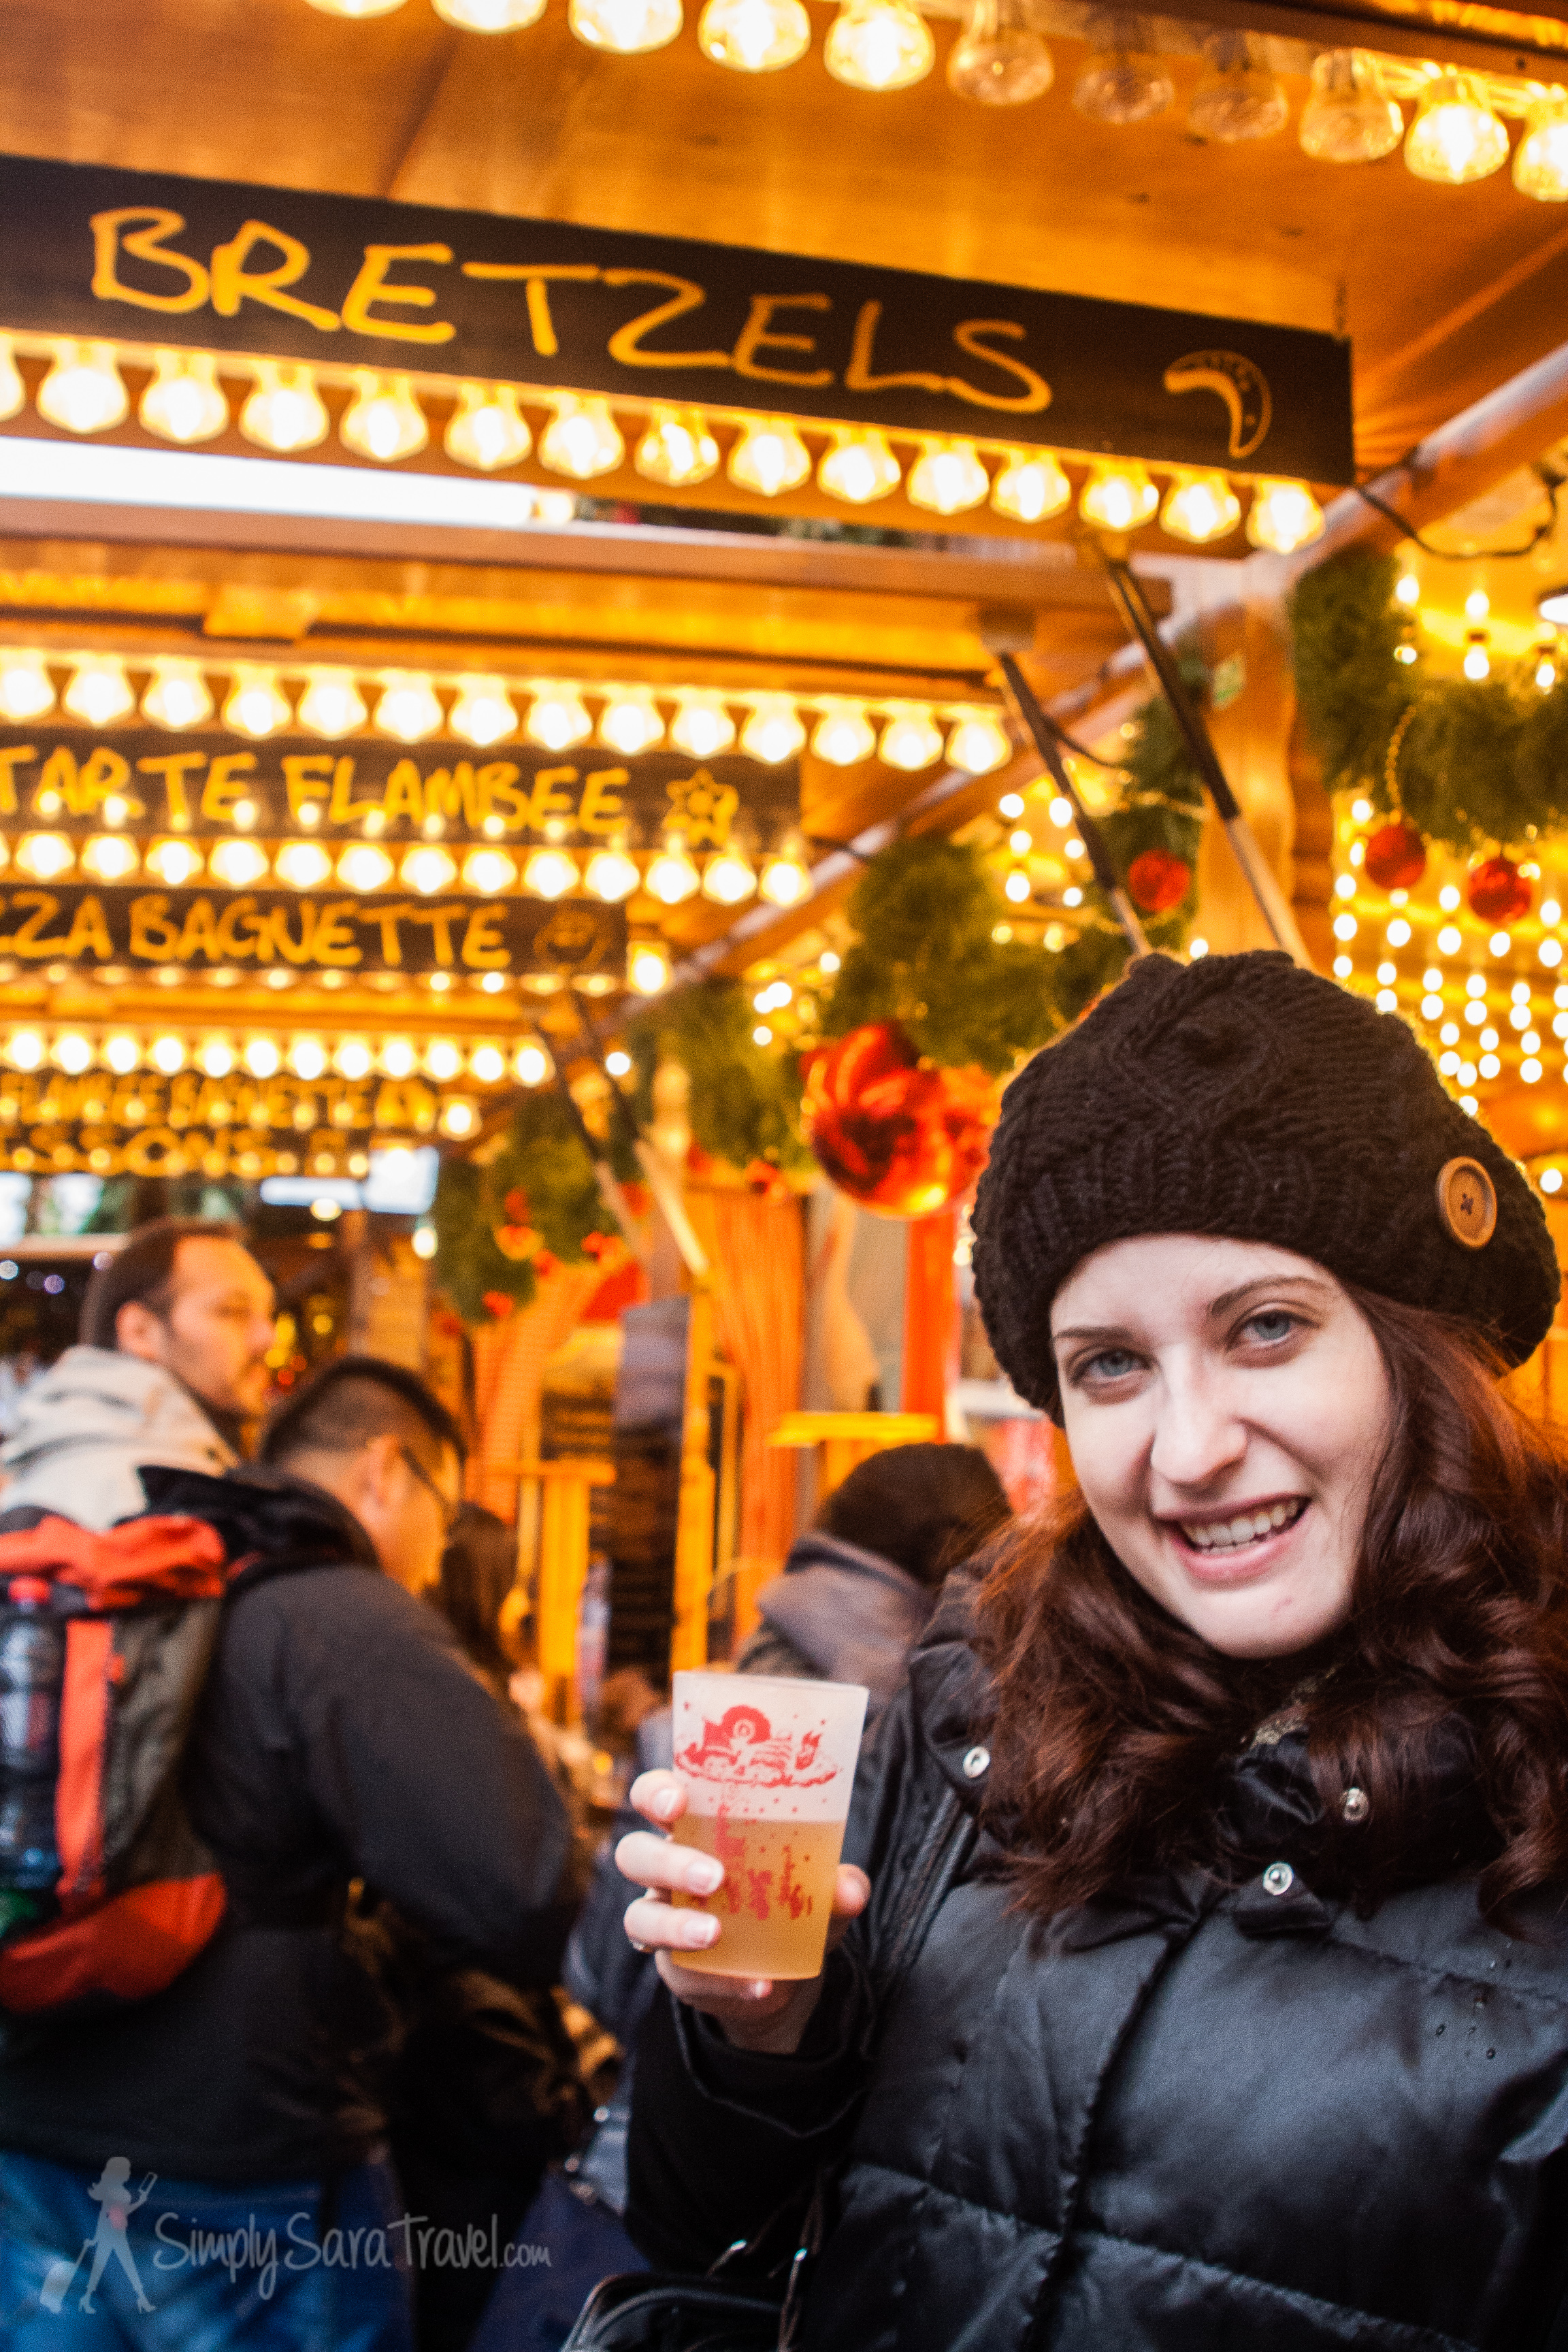 Bundle up with awinter coat and hat, and warm up with a glass of mulled wine!